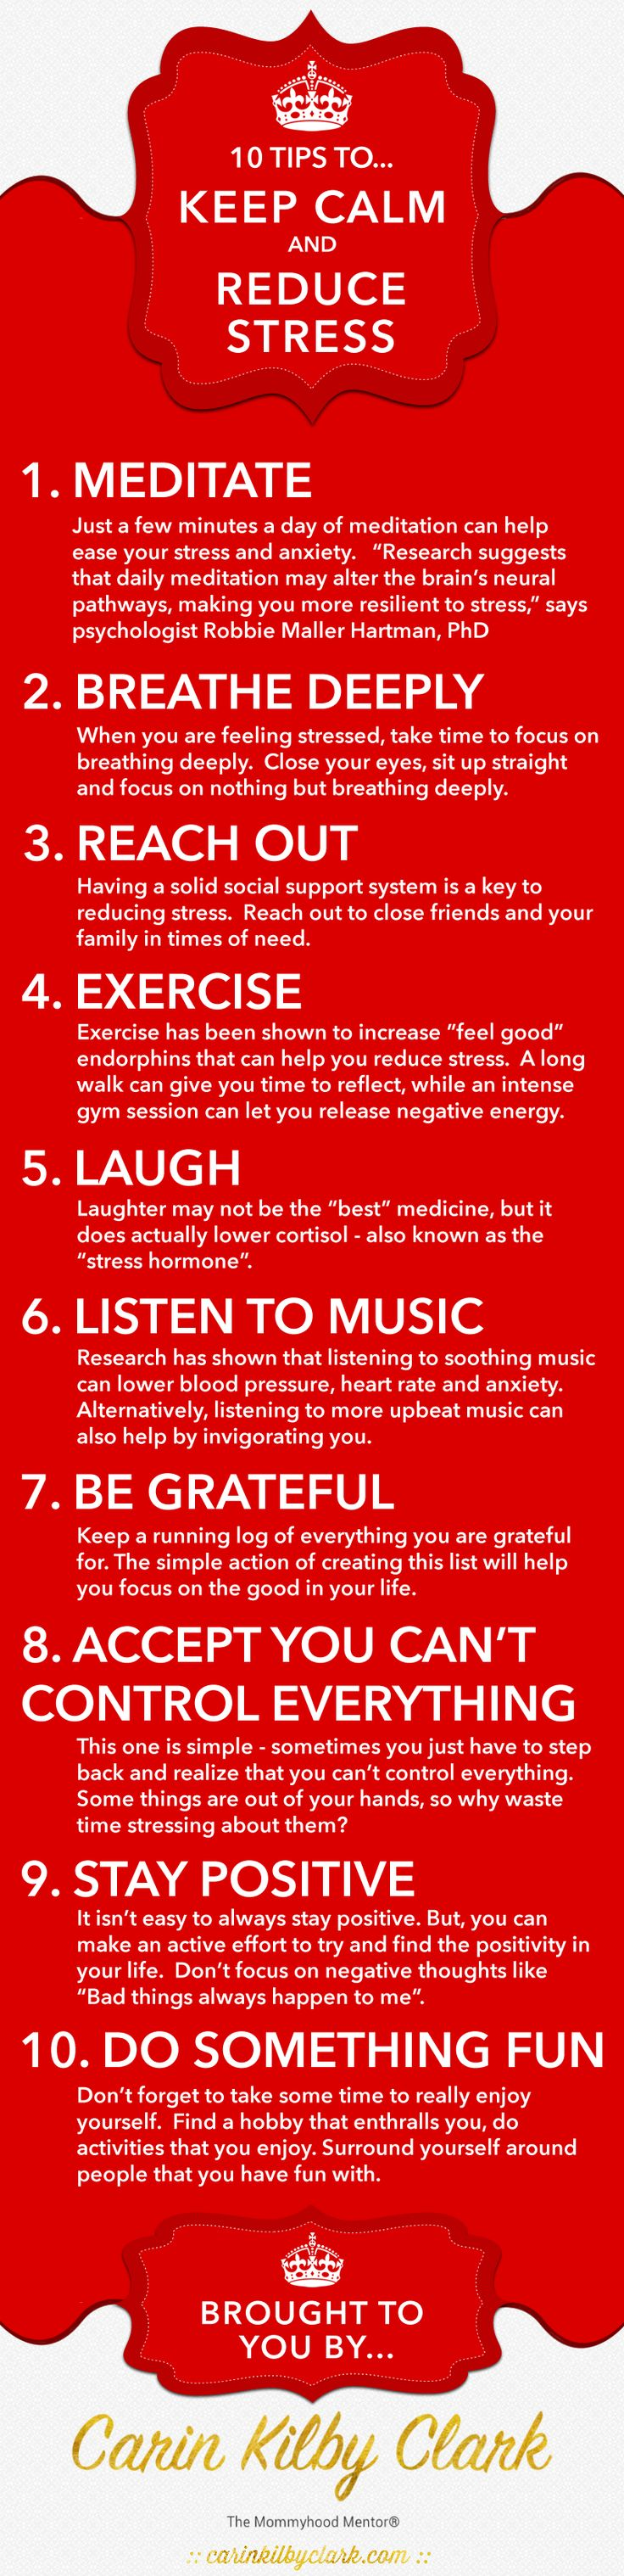 10 Tips to Keep Calm & Reduce Stress [Infographic] via @carinkilbyclark  http://carinkilbyclark.com/reduce-stress-infographic/